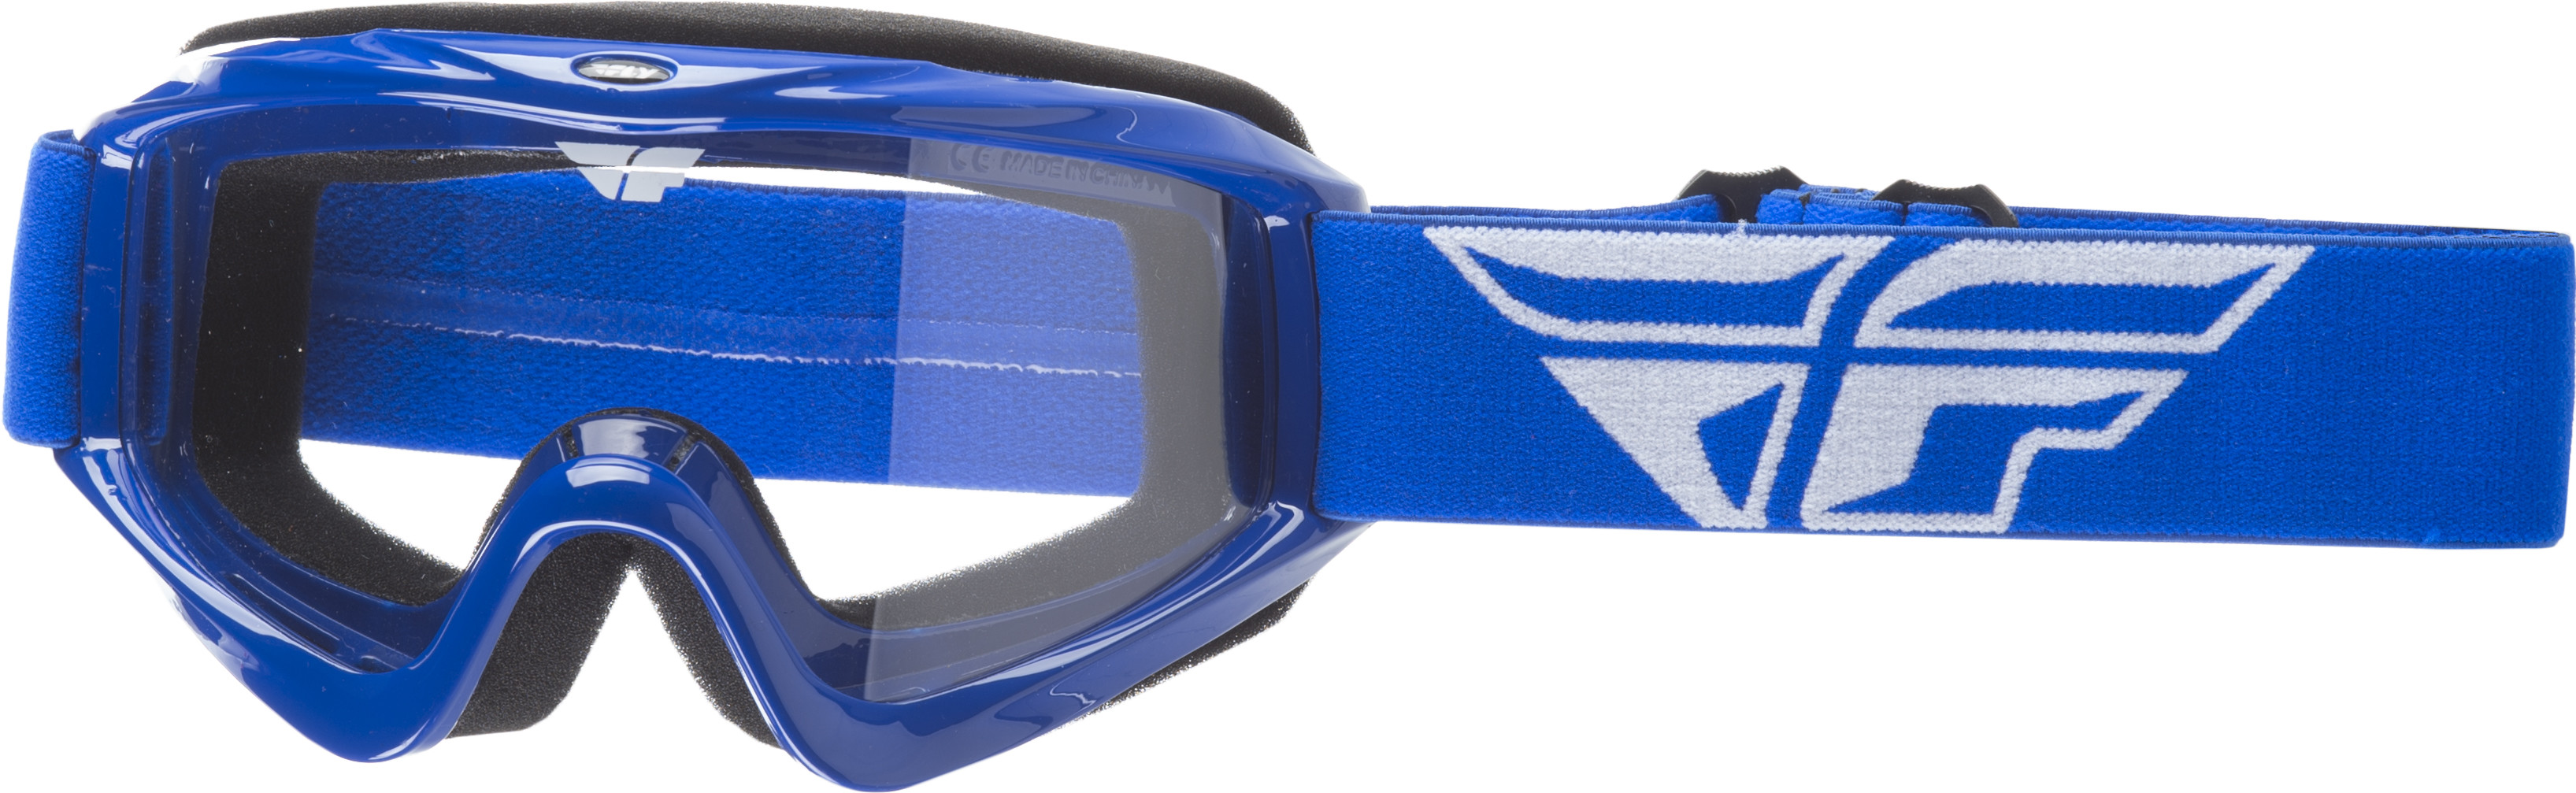 Focus Goggle Blue W/ Clear Lens